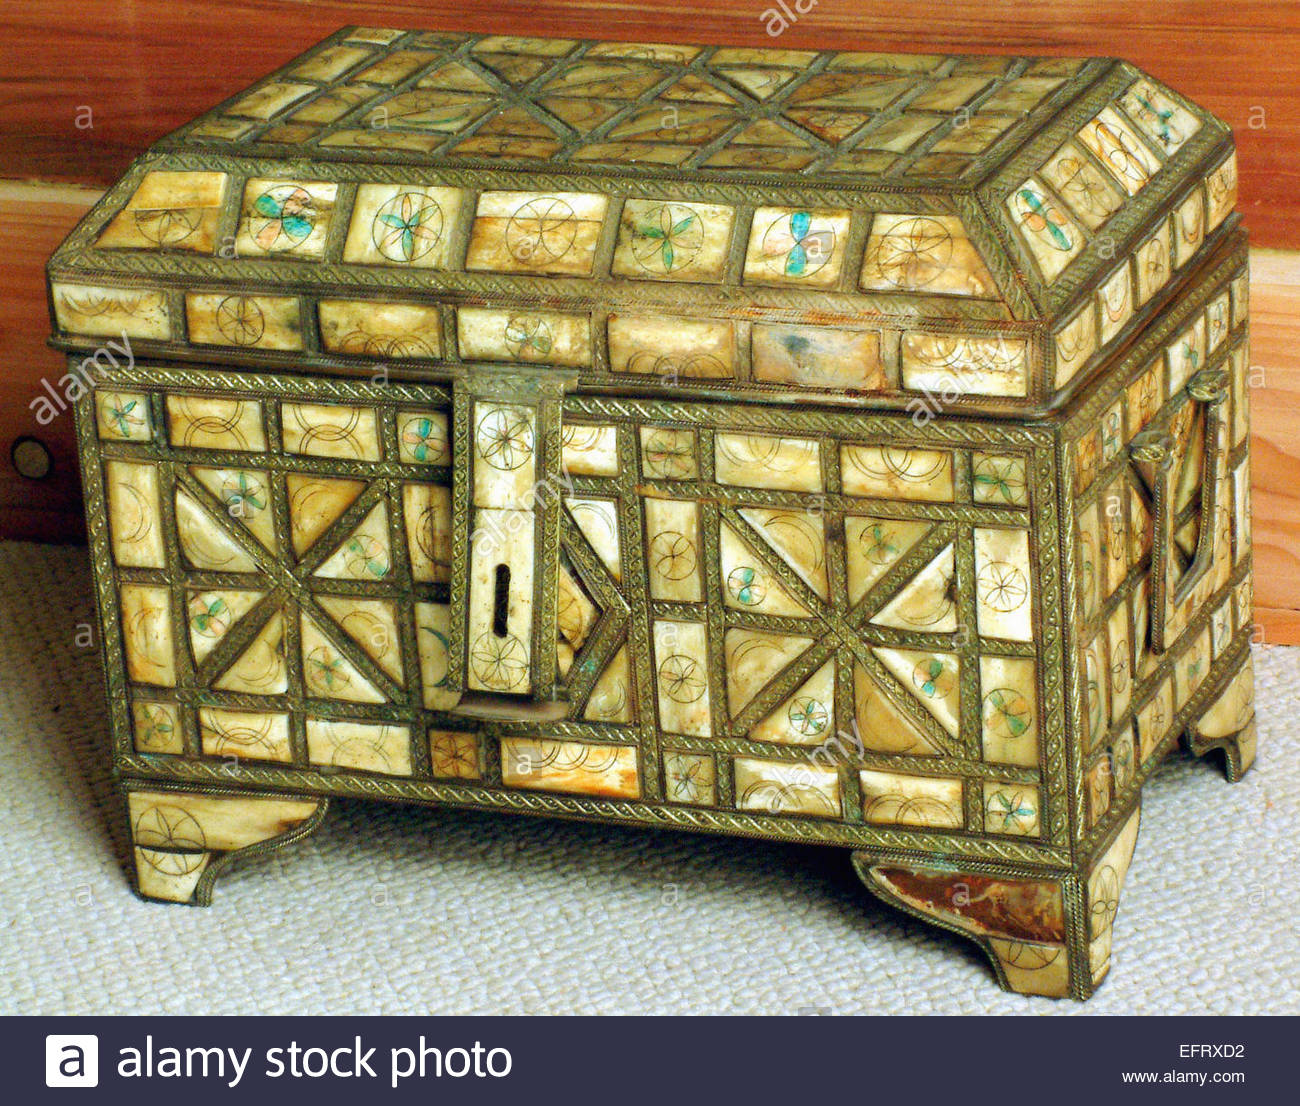 Box Decorated With Bone And Metal Art Artwork Western Sahara Spanish Sahara Sahara Espanol EH ESH North Africa Currently - Stock Image